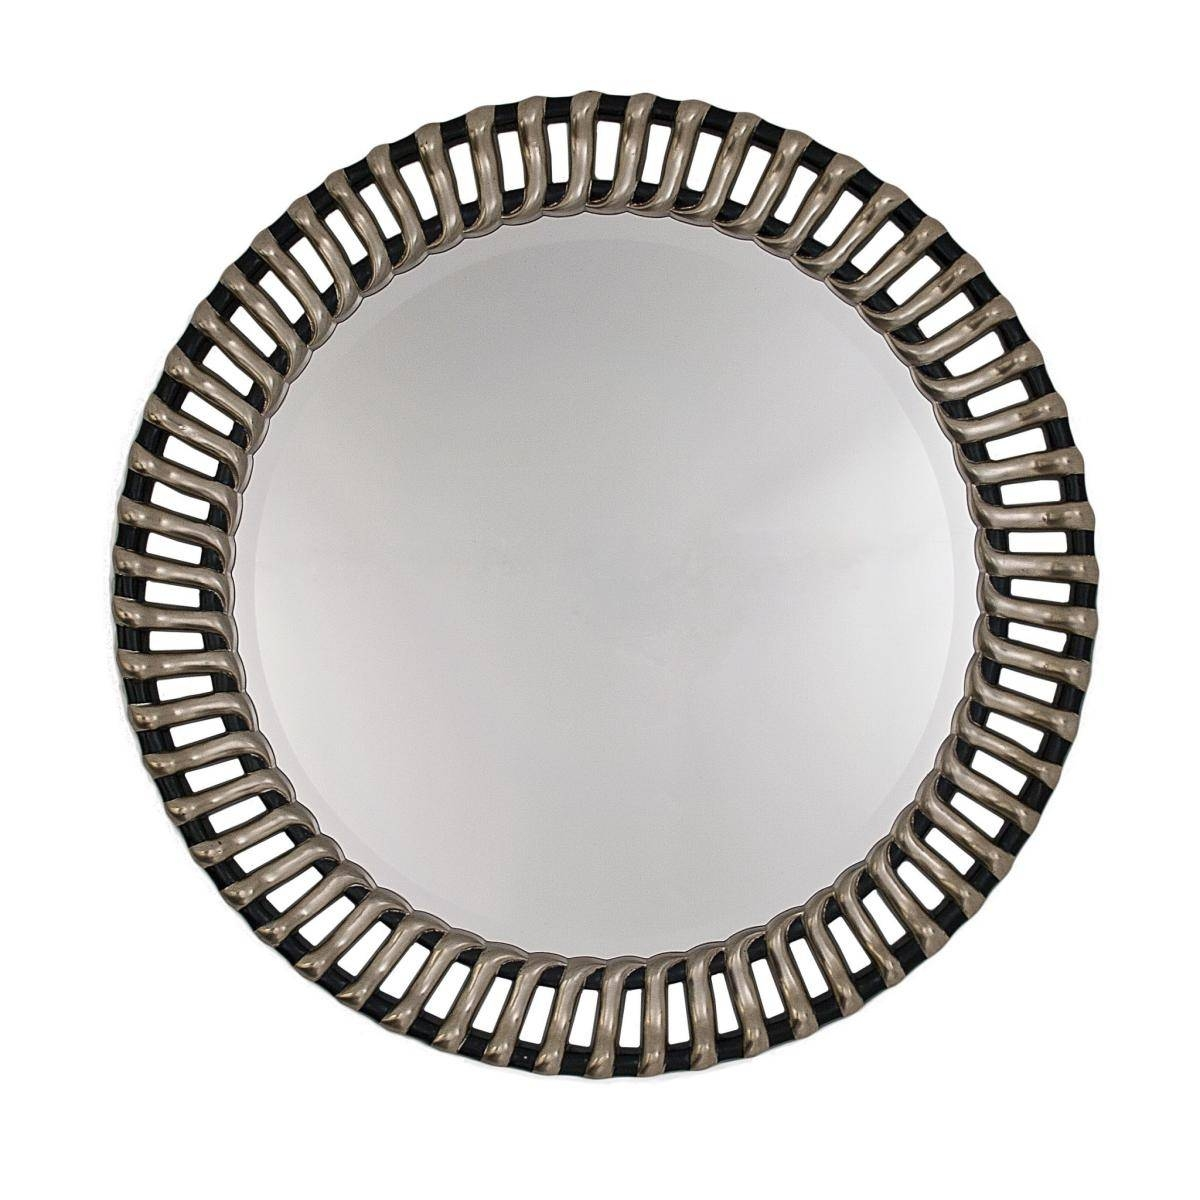 Round Ribbed Framed Silver And Black Bevelled Wall Mirror with regard to Oval Silver Mirrors (Image 19 of 25)